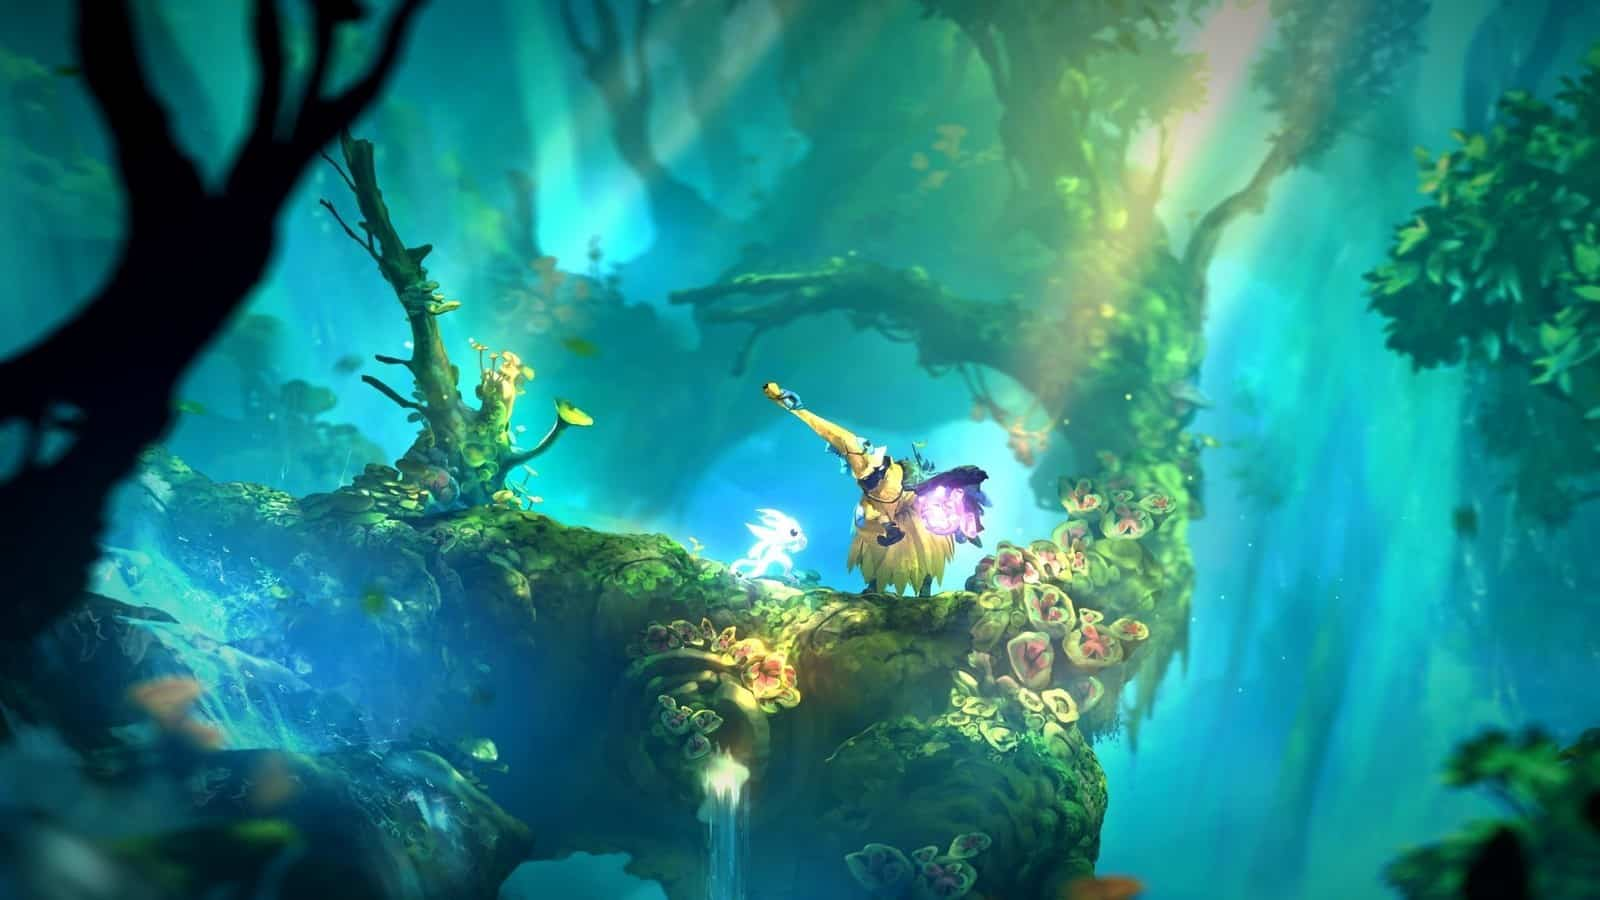 E3 2019 finally gave us an update on Ori and the Will of the Wisps